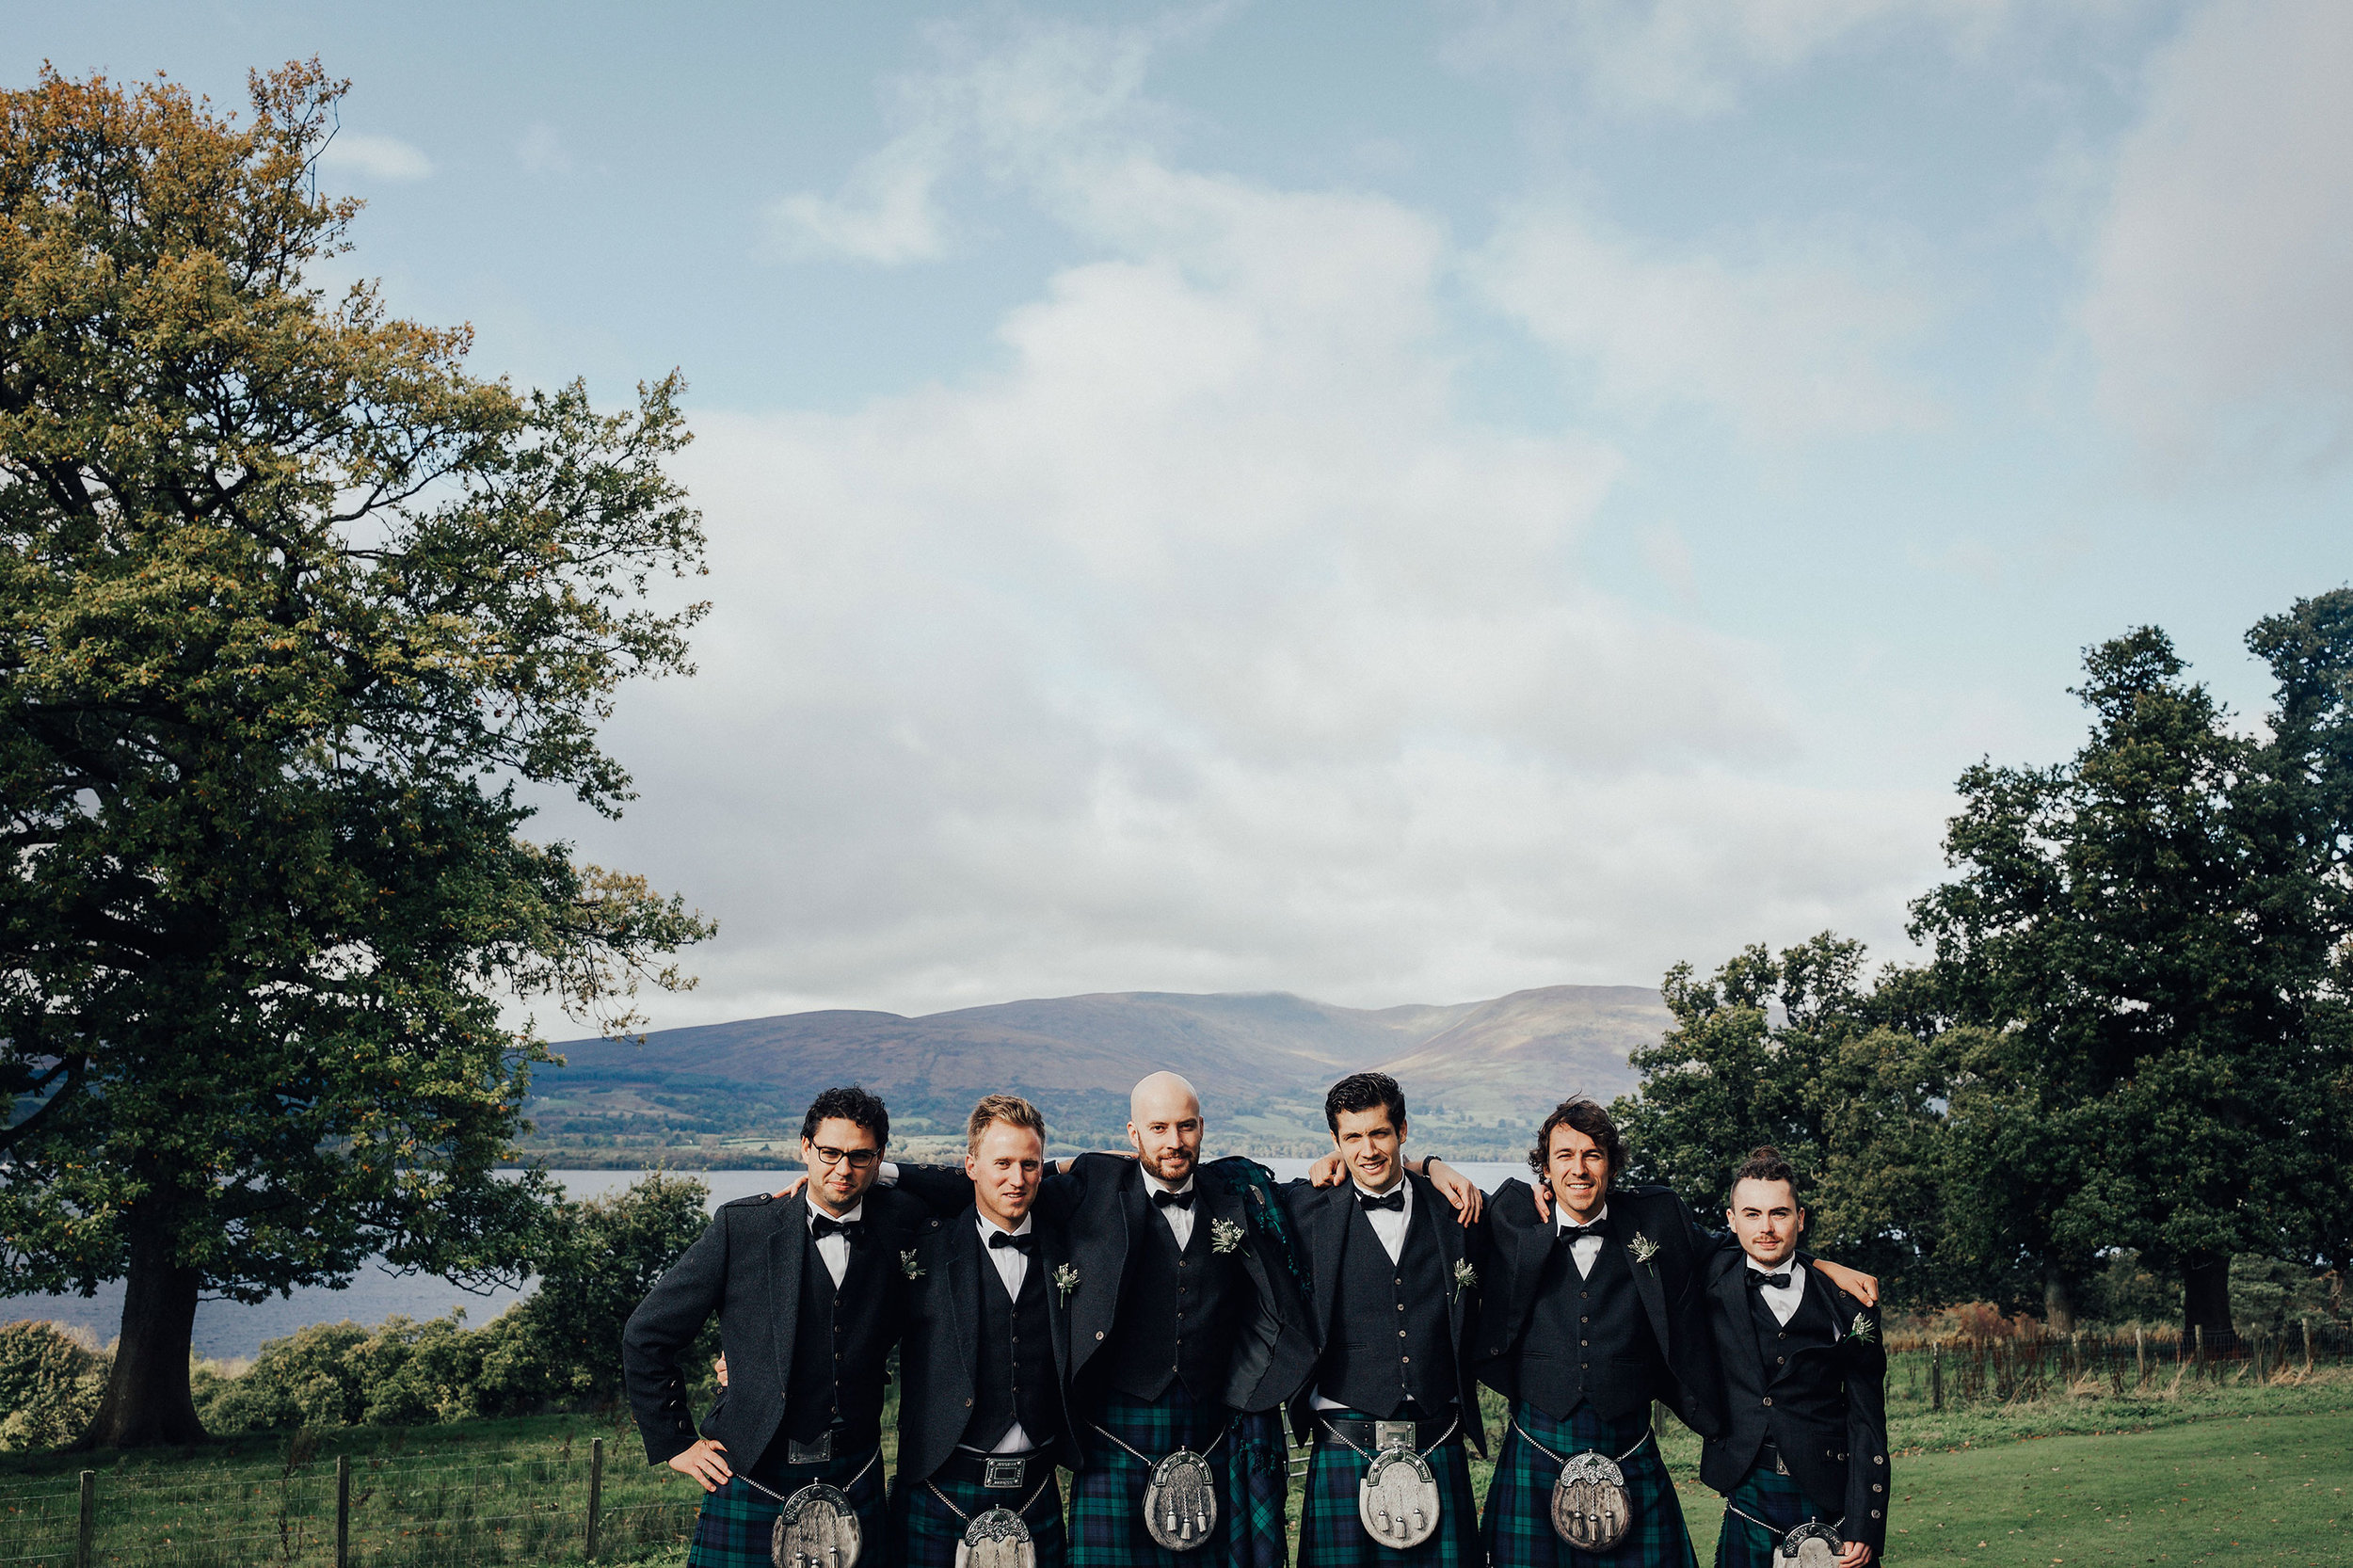 BOTURICH_CASTLE_WEDDING_PHOTOGRAPHER_PJ_PHILLIPS_PHOTOGRAPHY_34.jpg